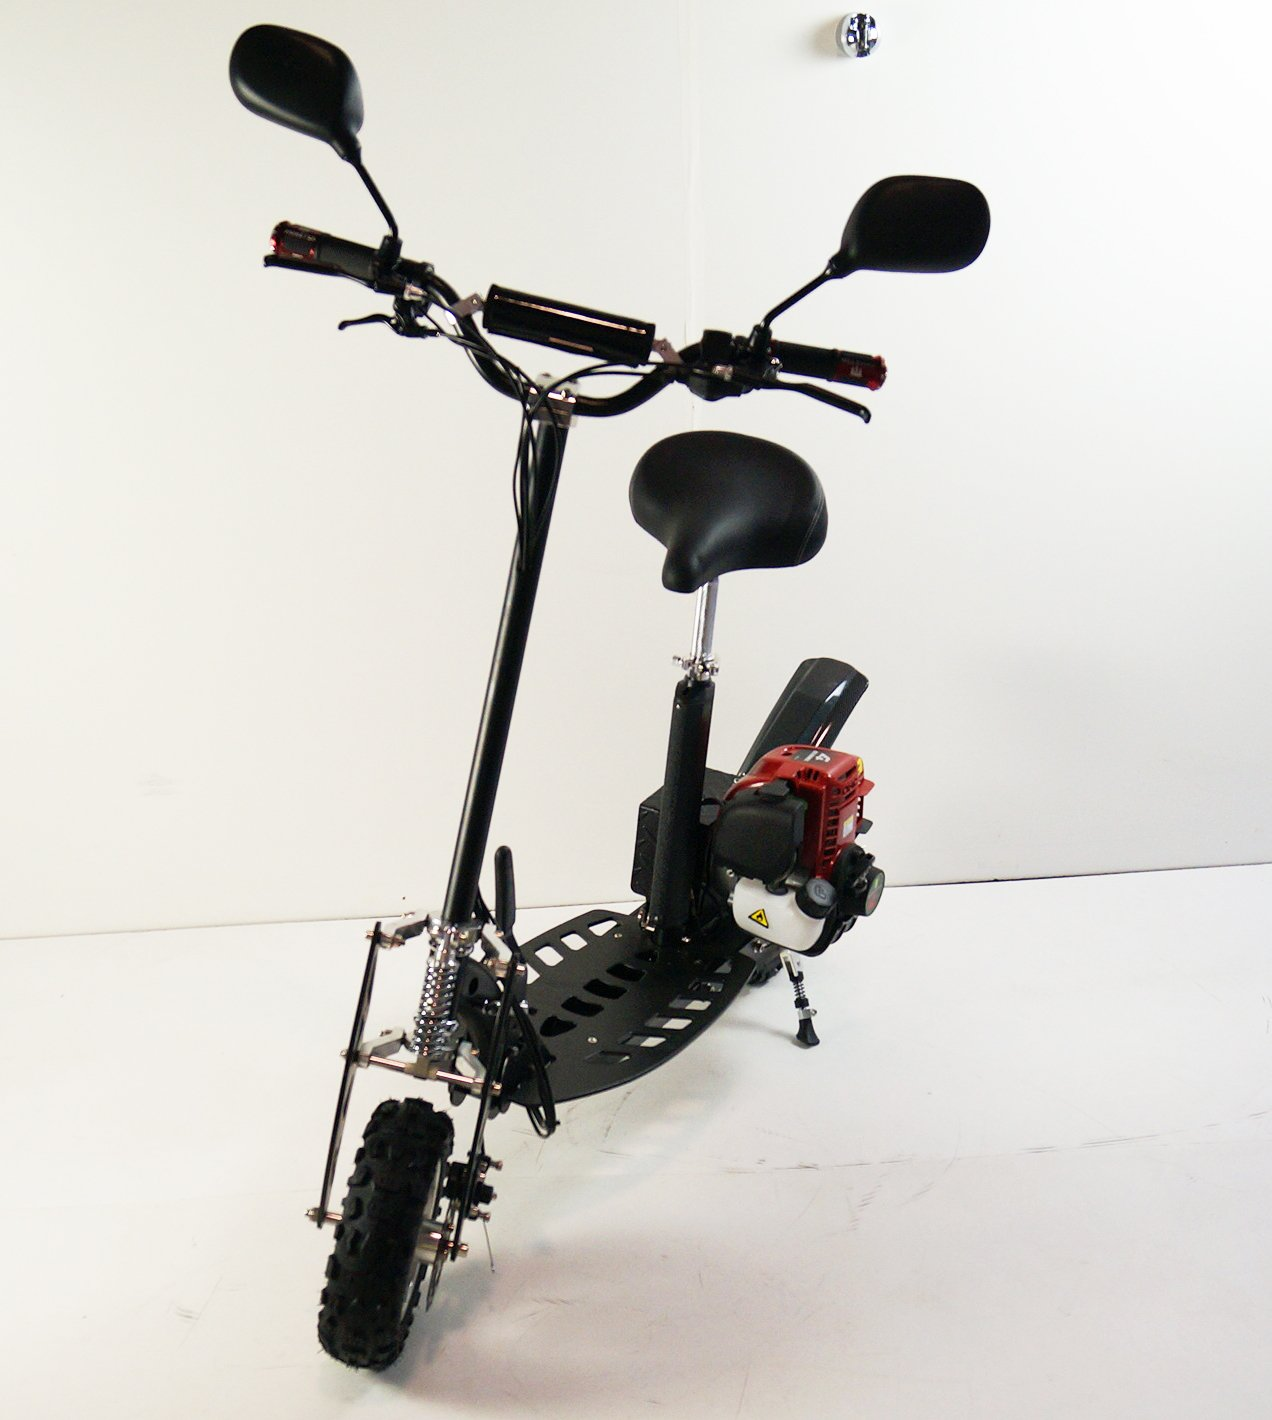 GAS scooter 002-37cc 4 Stroke